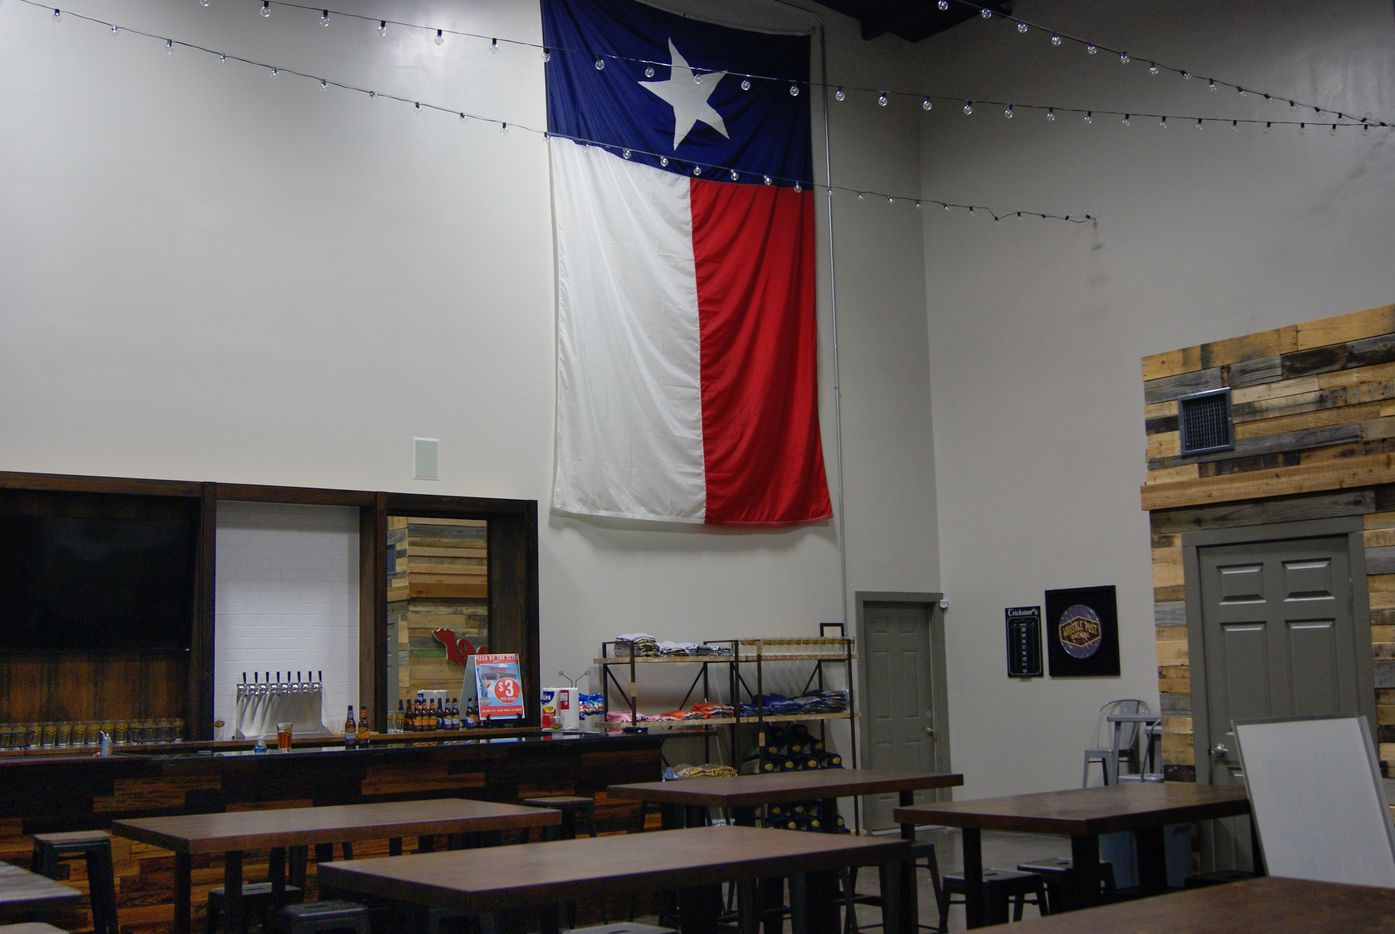 The Whistle Post Brewing Co. taproom will open on weekends at first and expand hours based on demand.